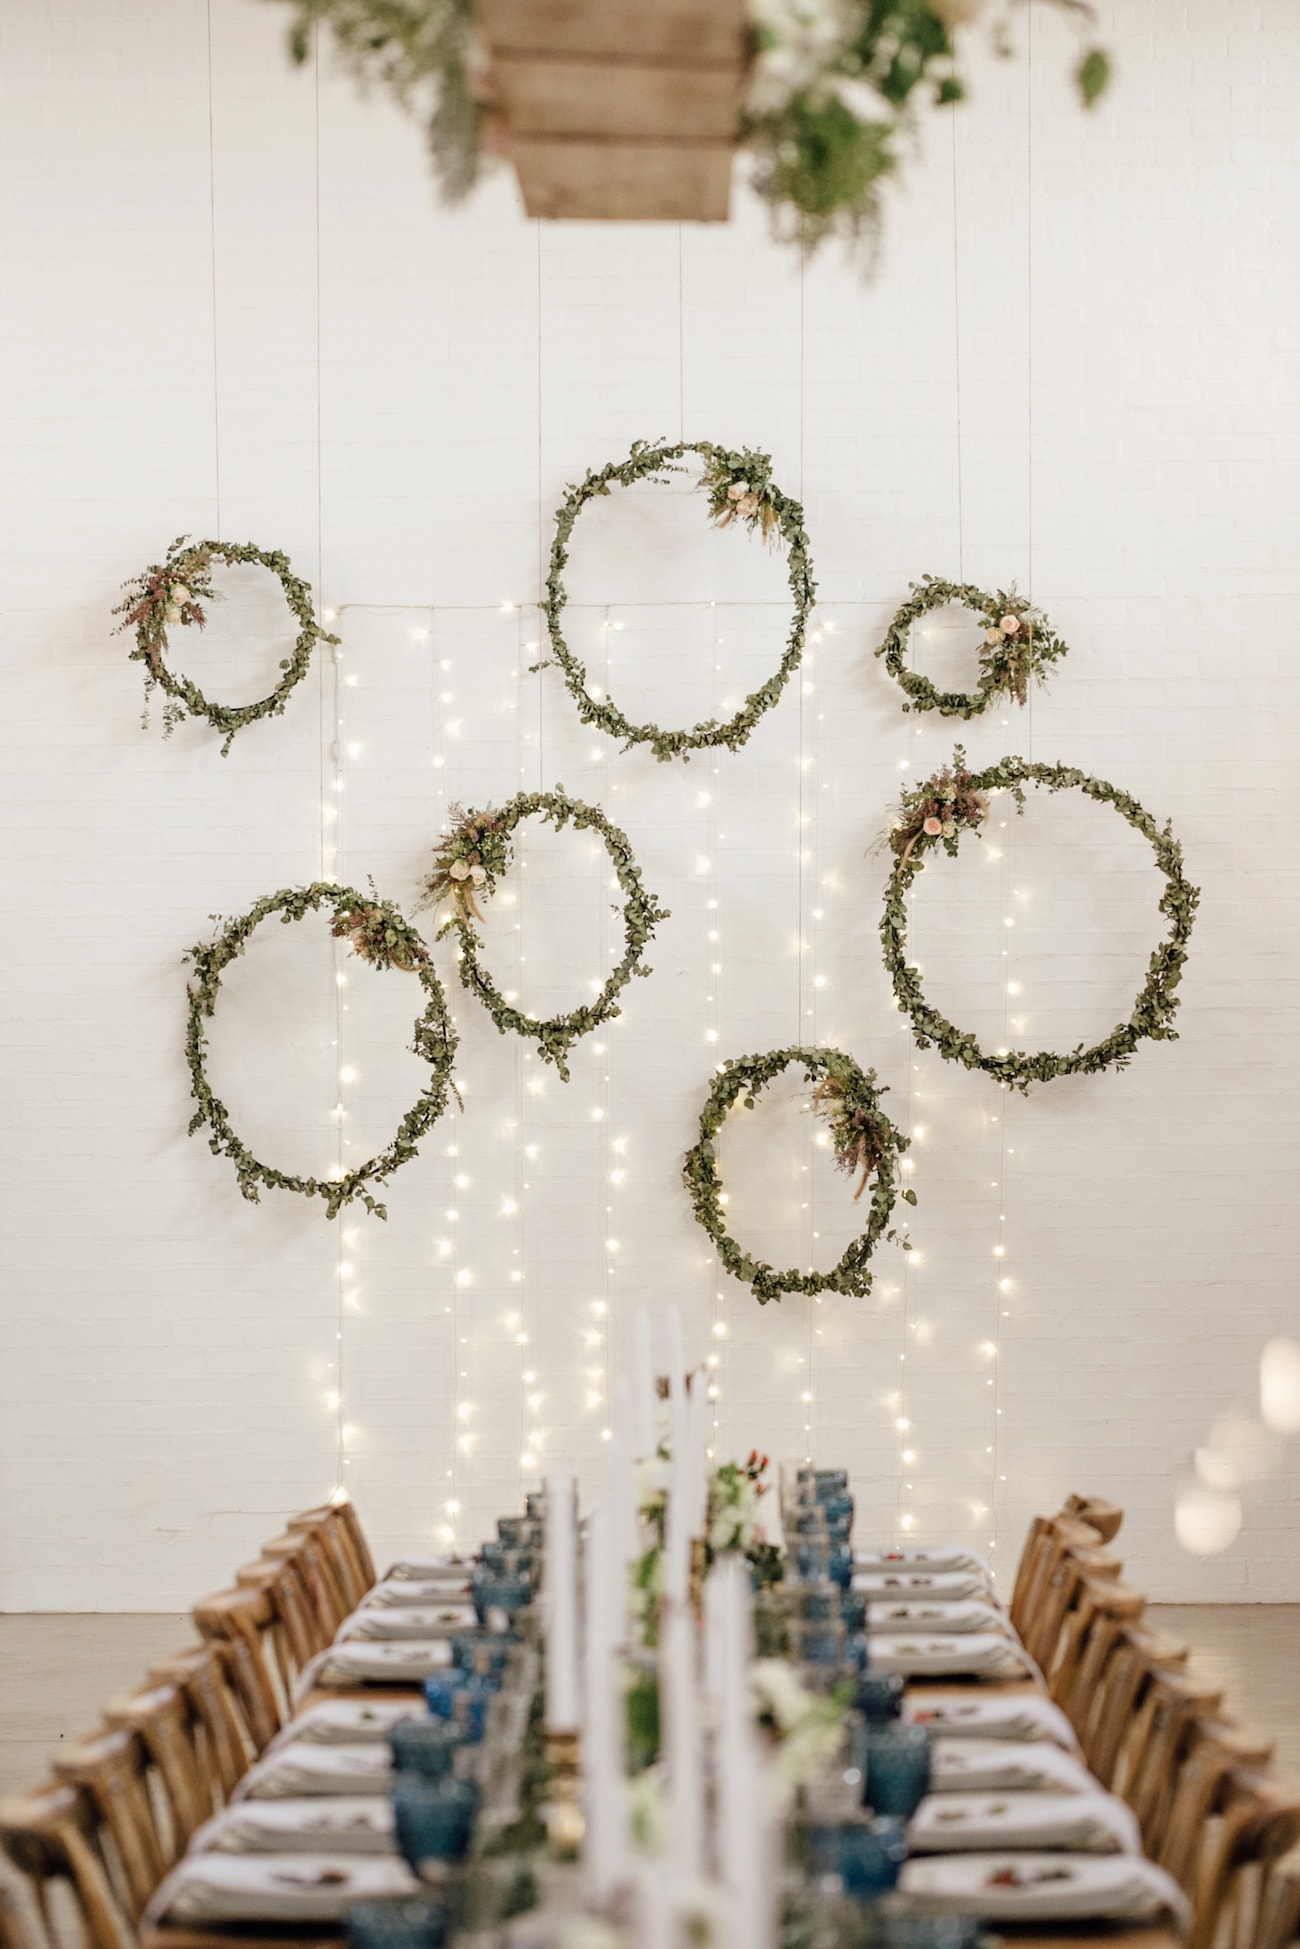 Hanging Greenery Wreaths | Credit: Page & Holmes